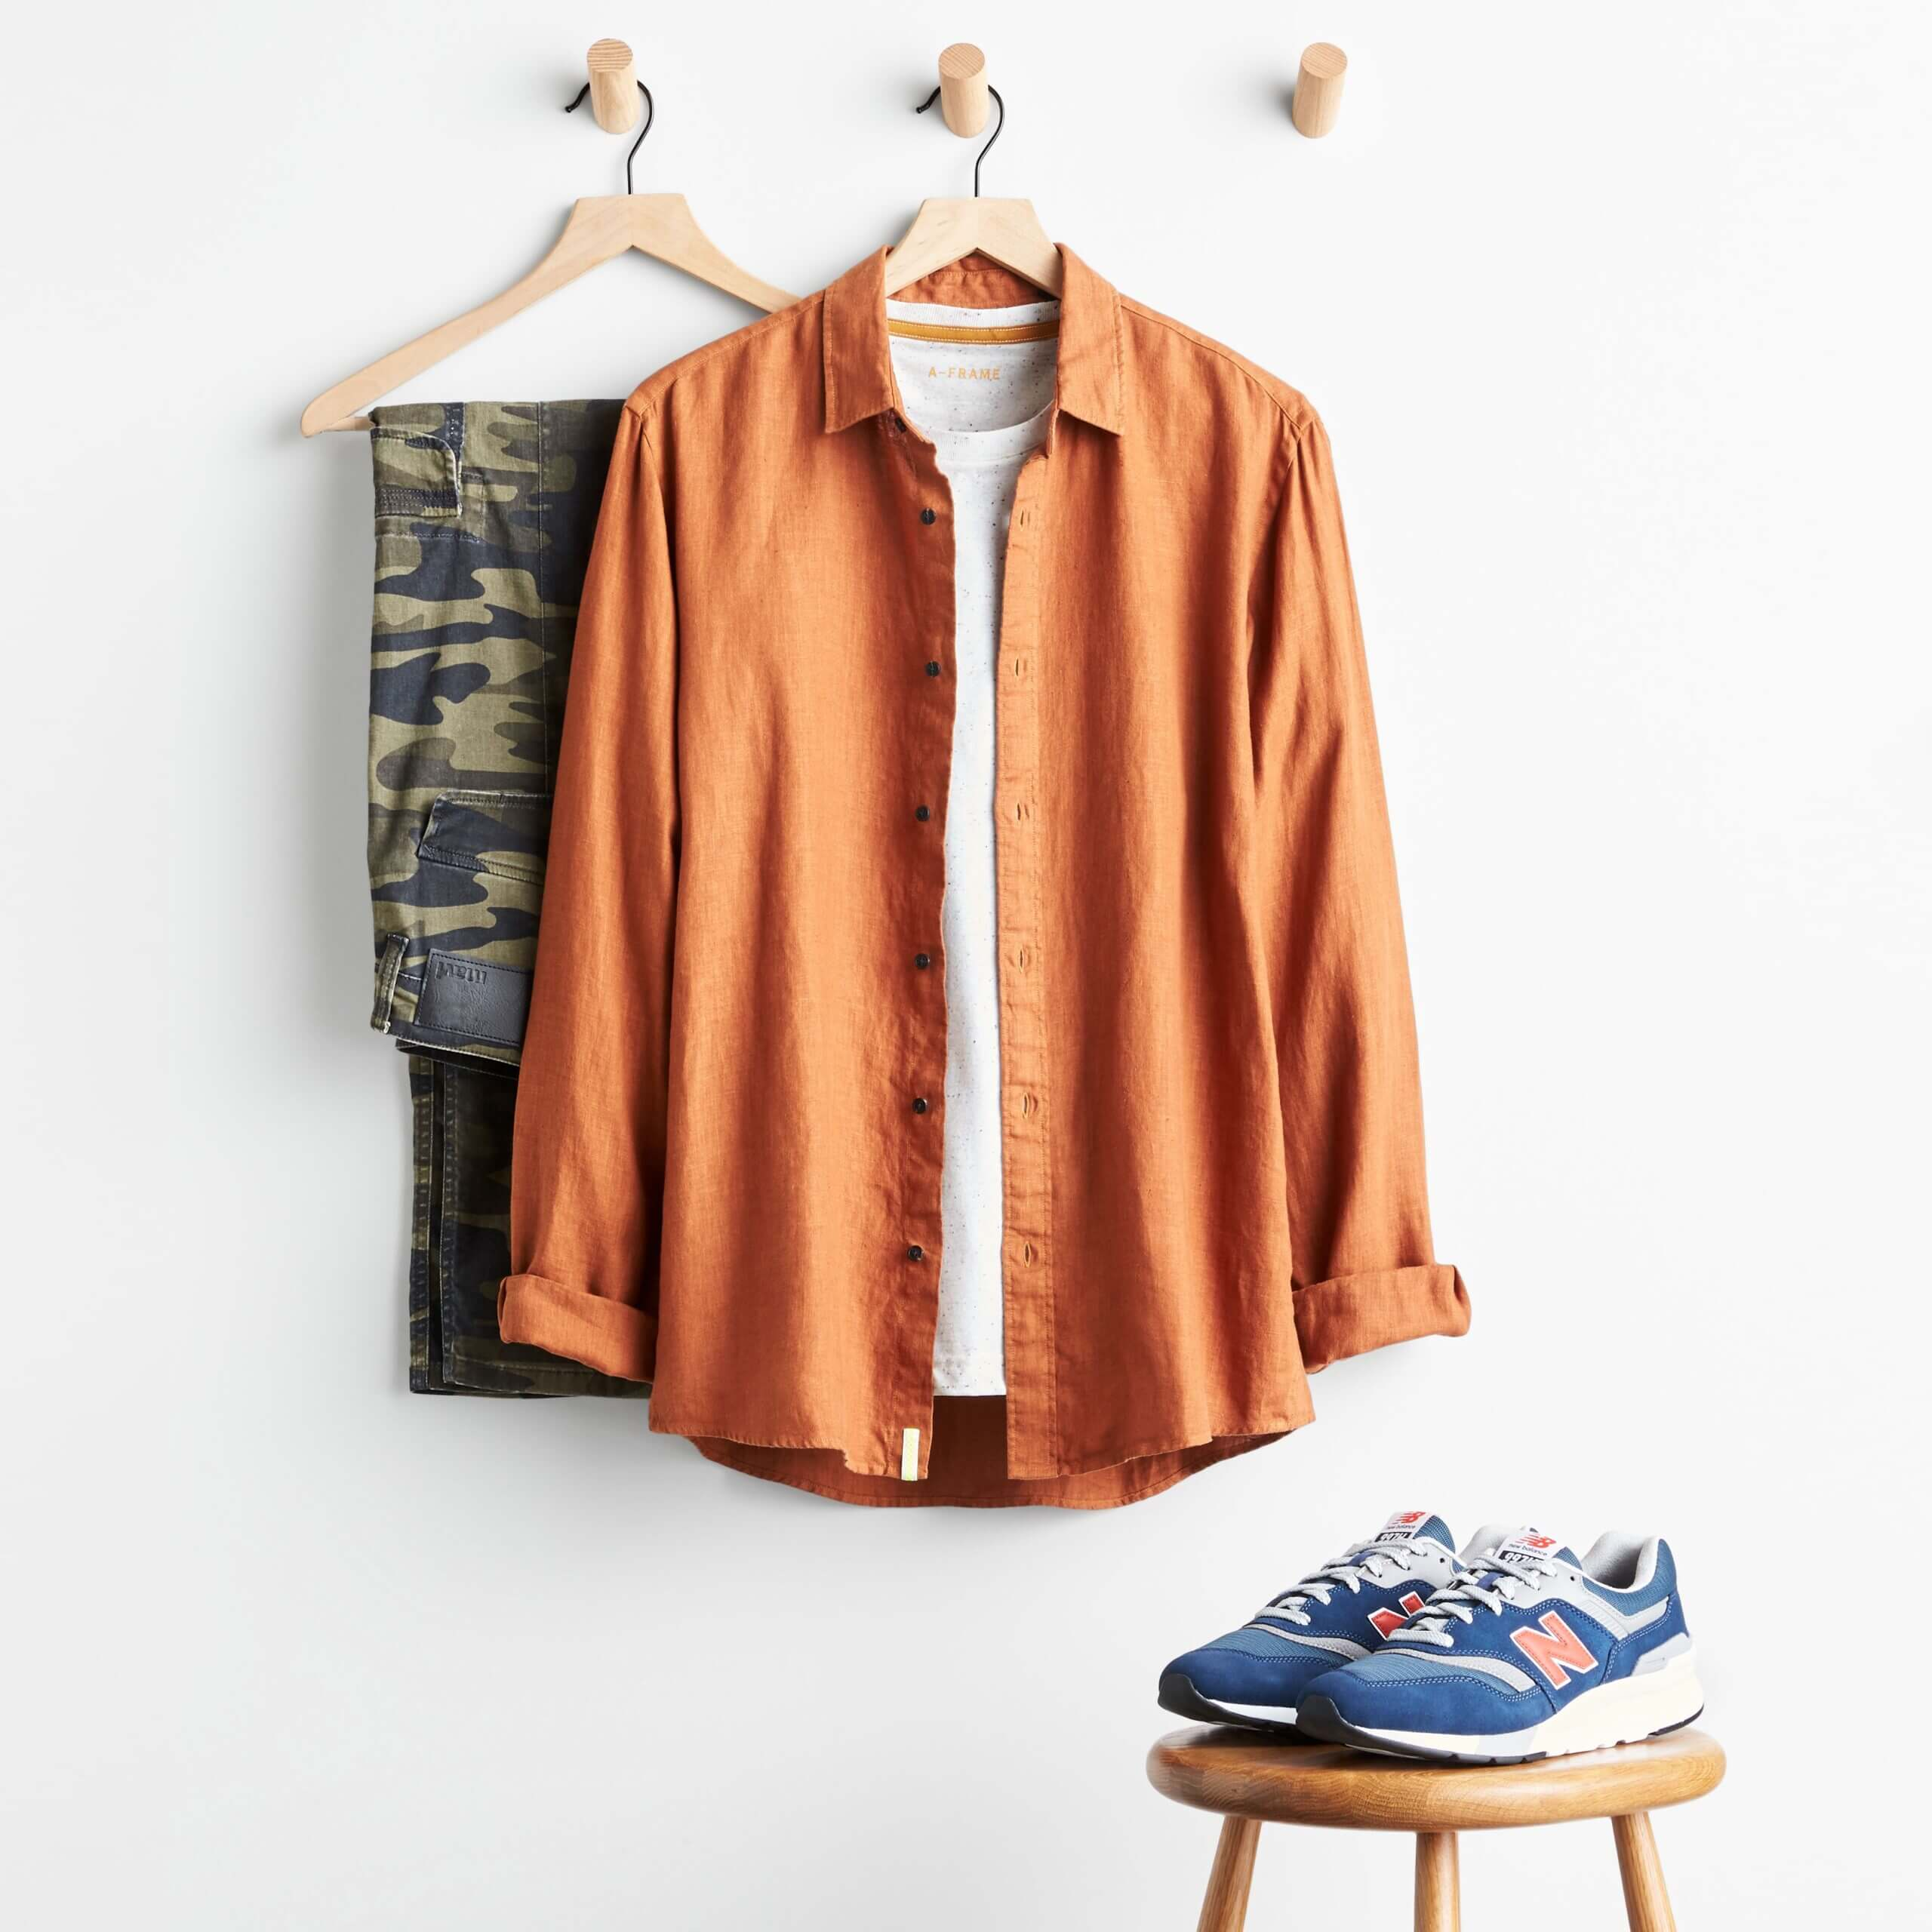 Stitch Fix Men's camouflage pants, white T-shirt, orange button-up and navy and orange sneakers.